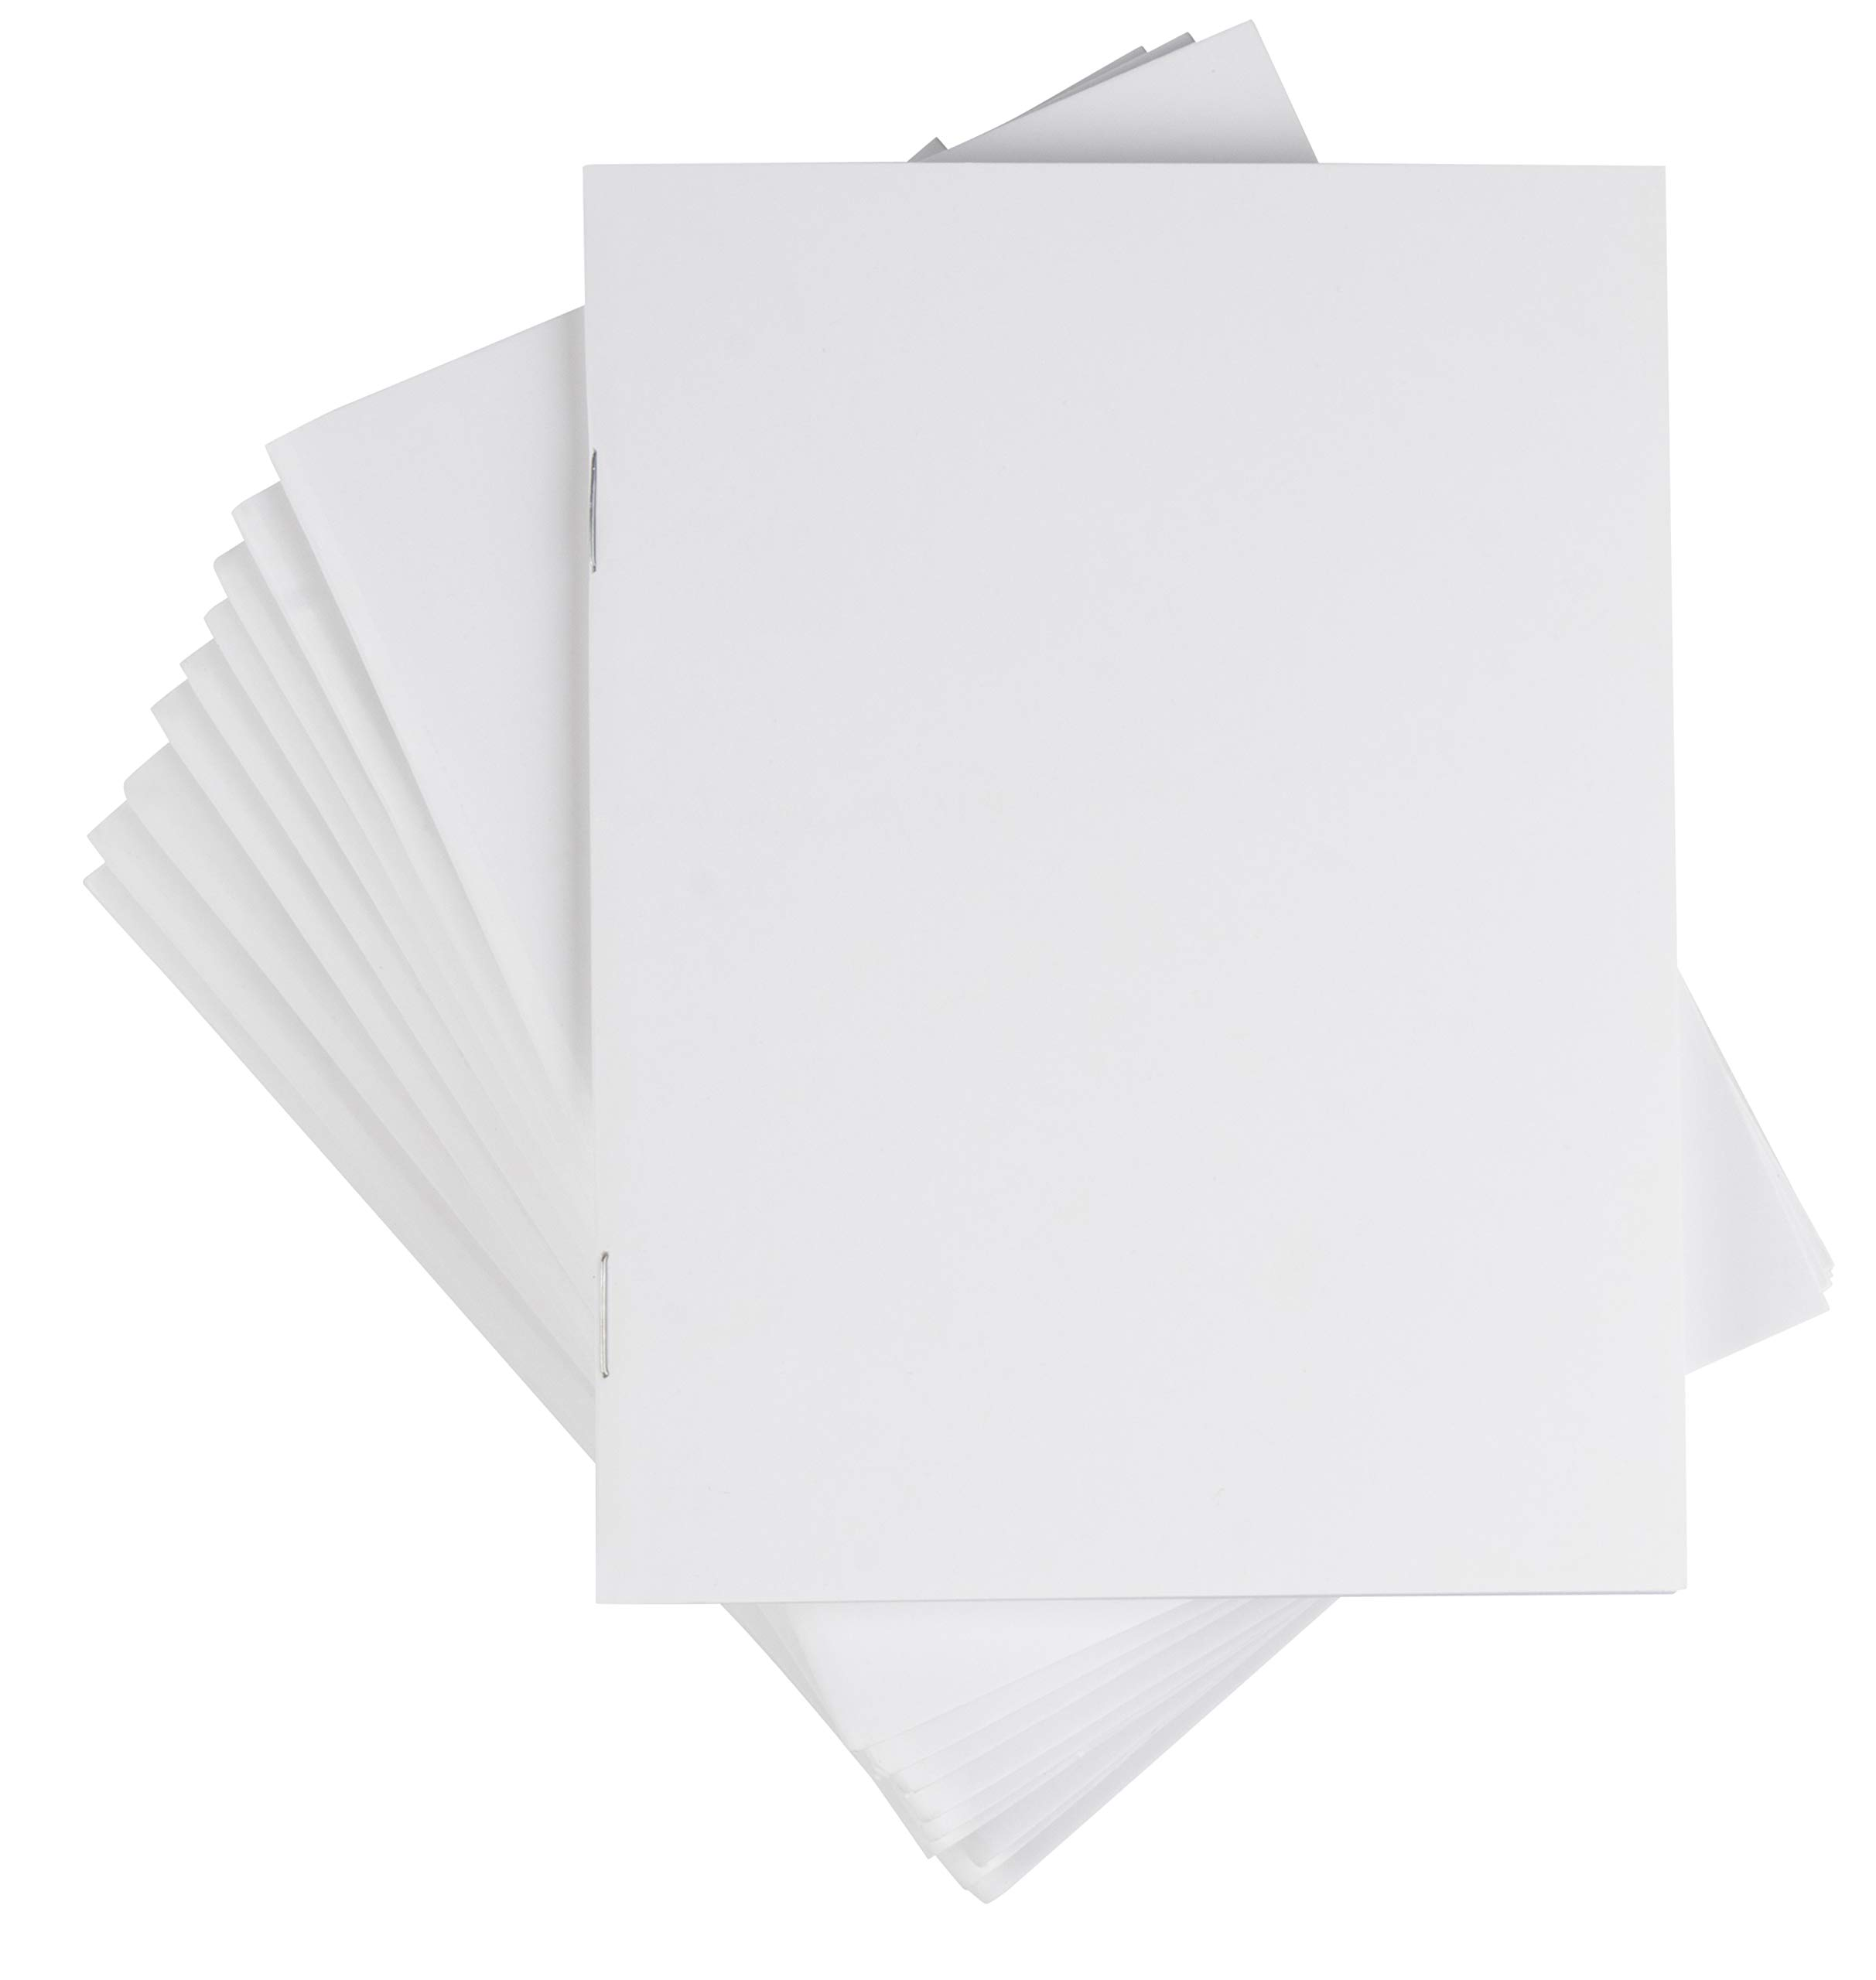 Blank Notebook - 24-Pack Unlined Books, Unruled Plain Travel Journals for Students, School, Children's Writing Books, Creative Class Projects, White, 4.25 x 5.5 Inches, 24 Sheets Each by Paper Junkie